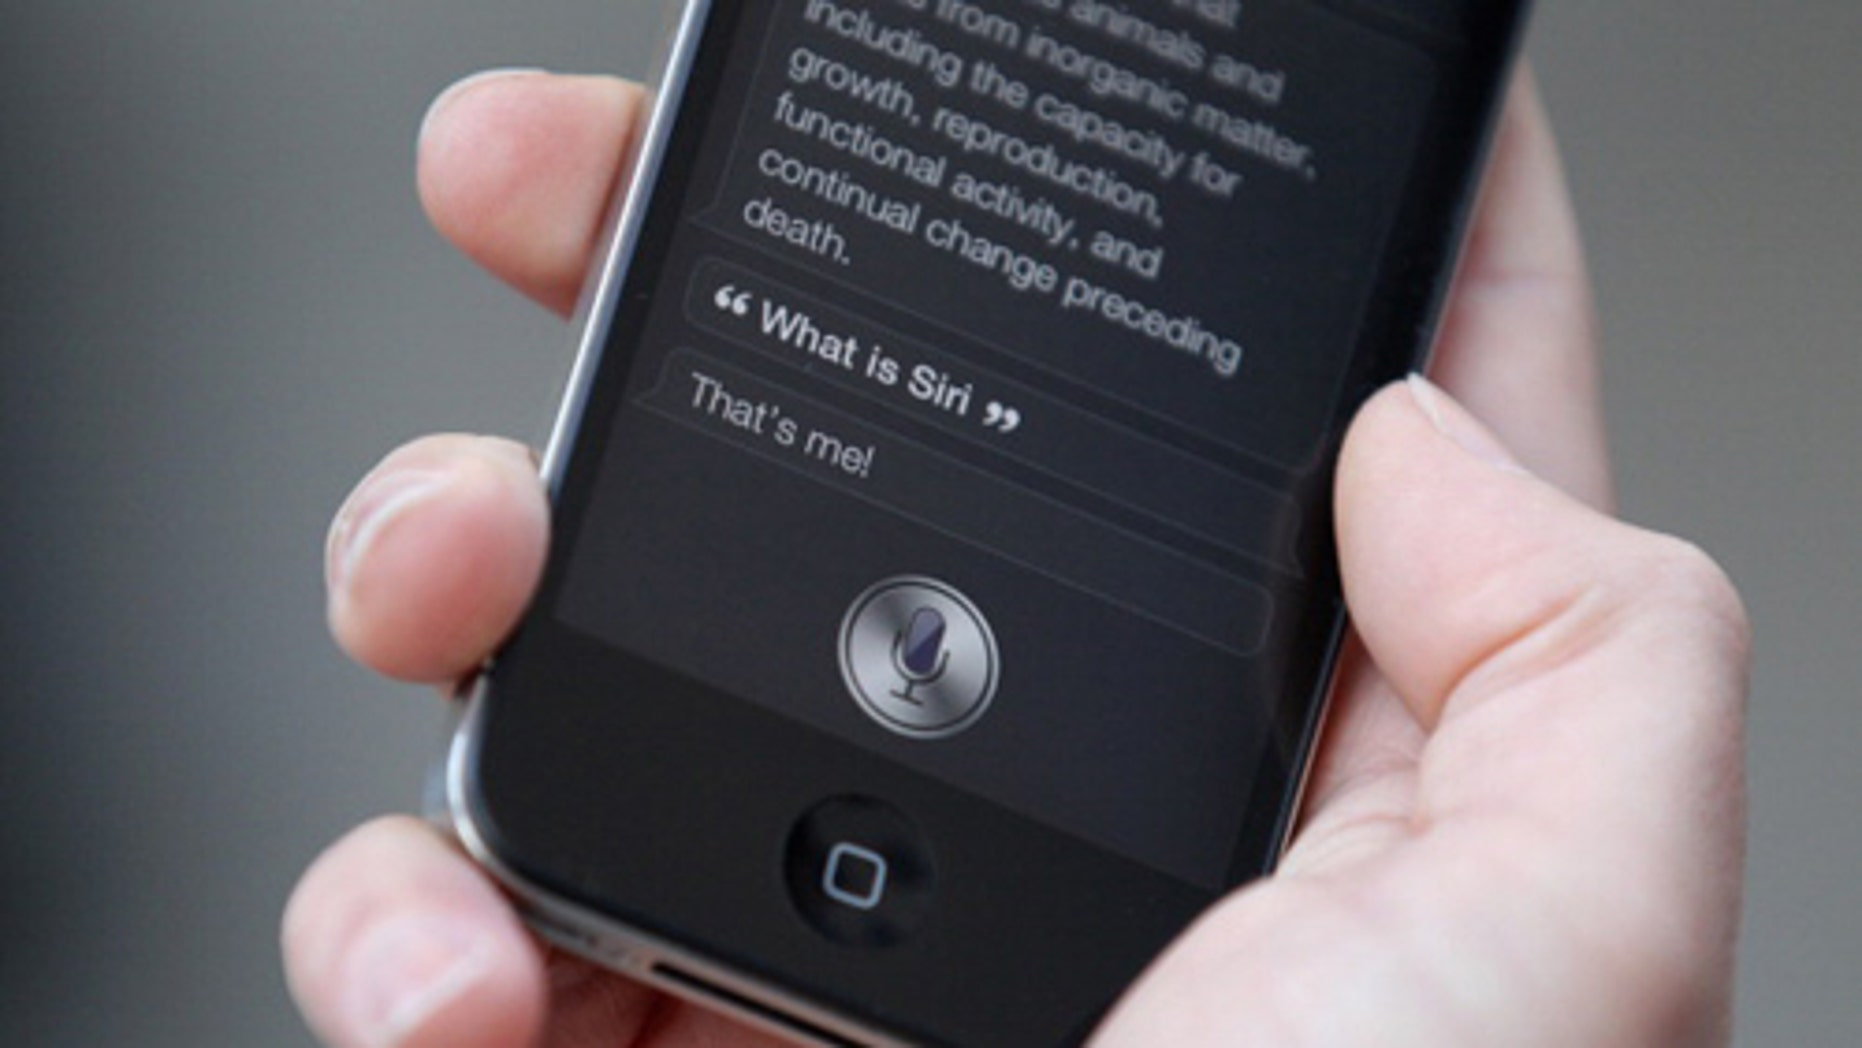 A call placed by Siri saved a man who was trapped beneath a truck.